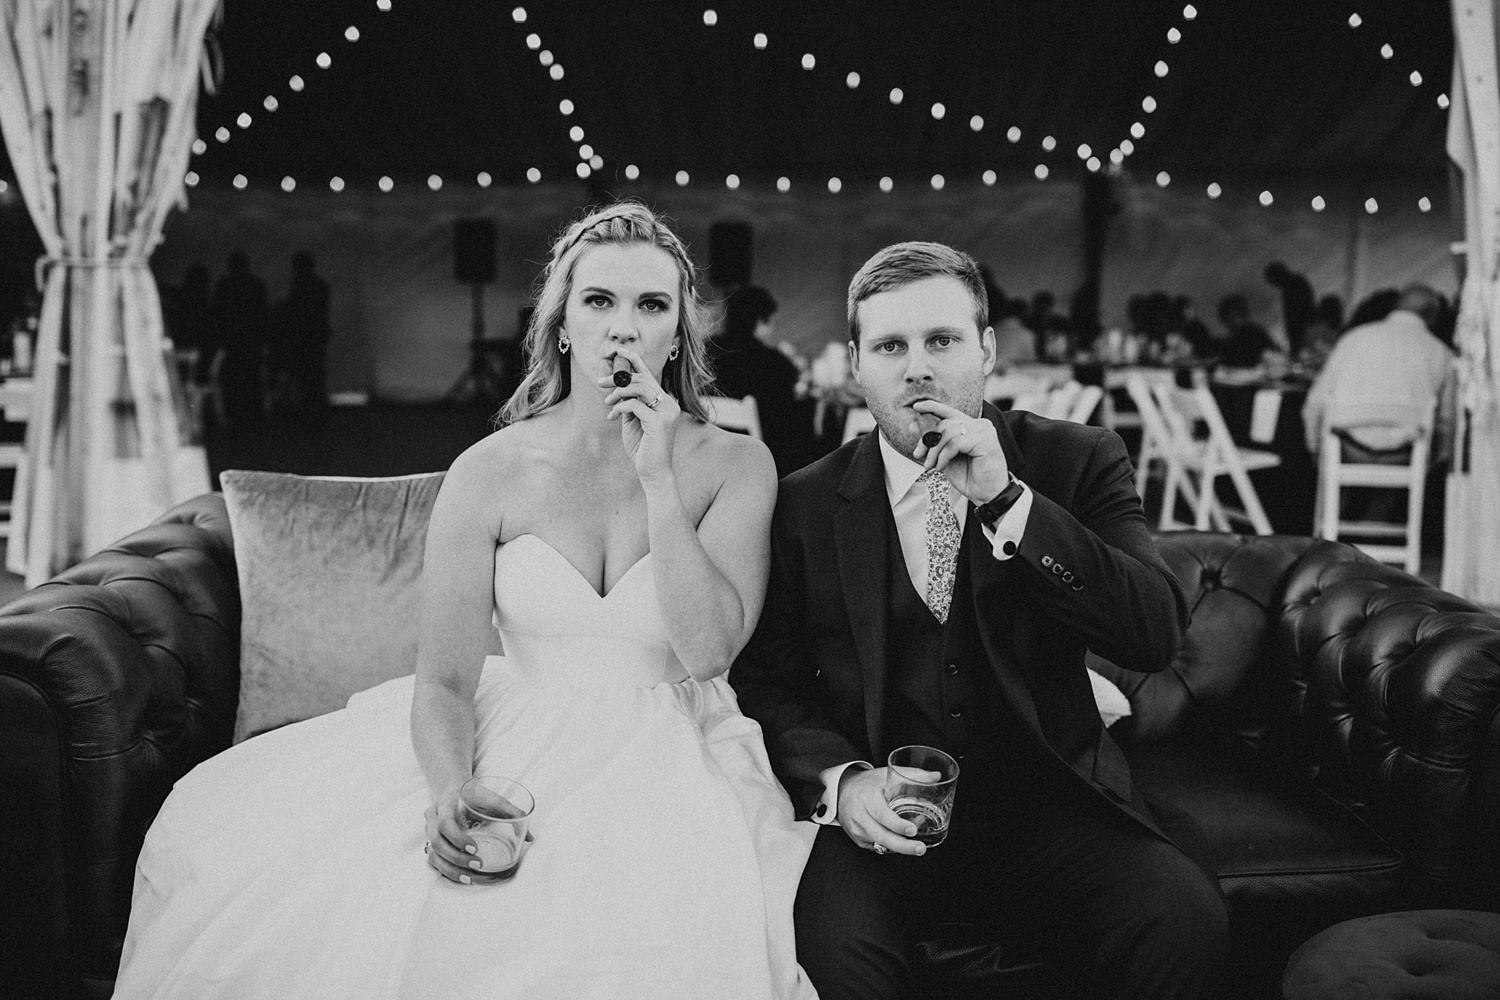 Colorado Wedding | Specialty Wedding Cigars | Unique Bride and Groom Pictures | Cassie Madden Photography